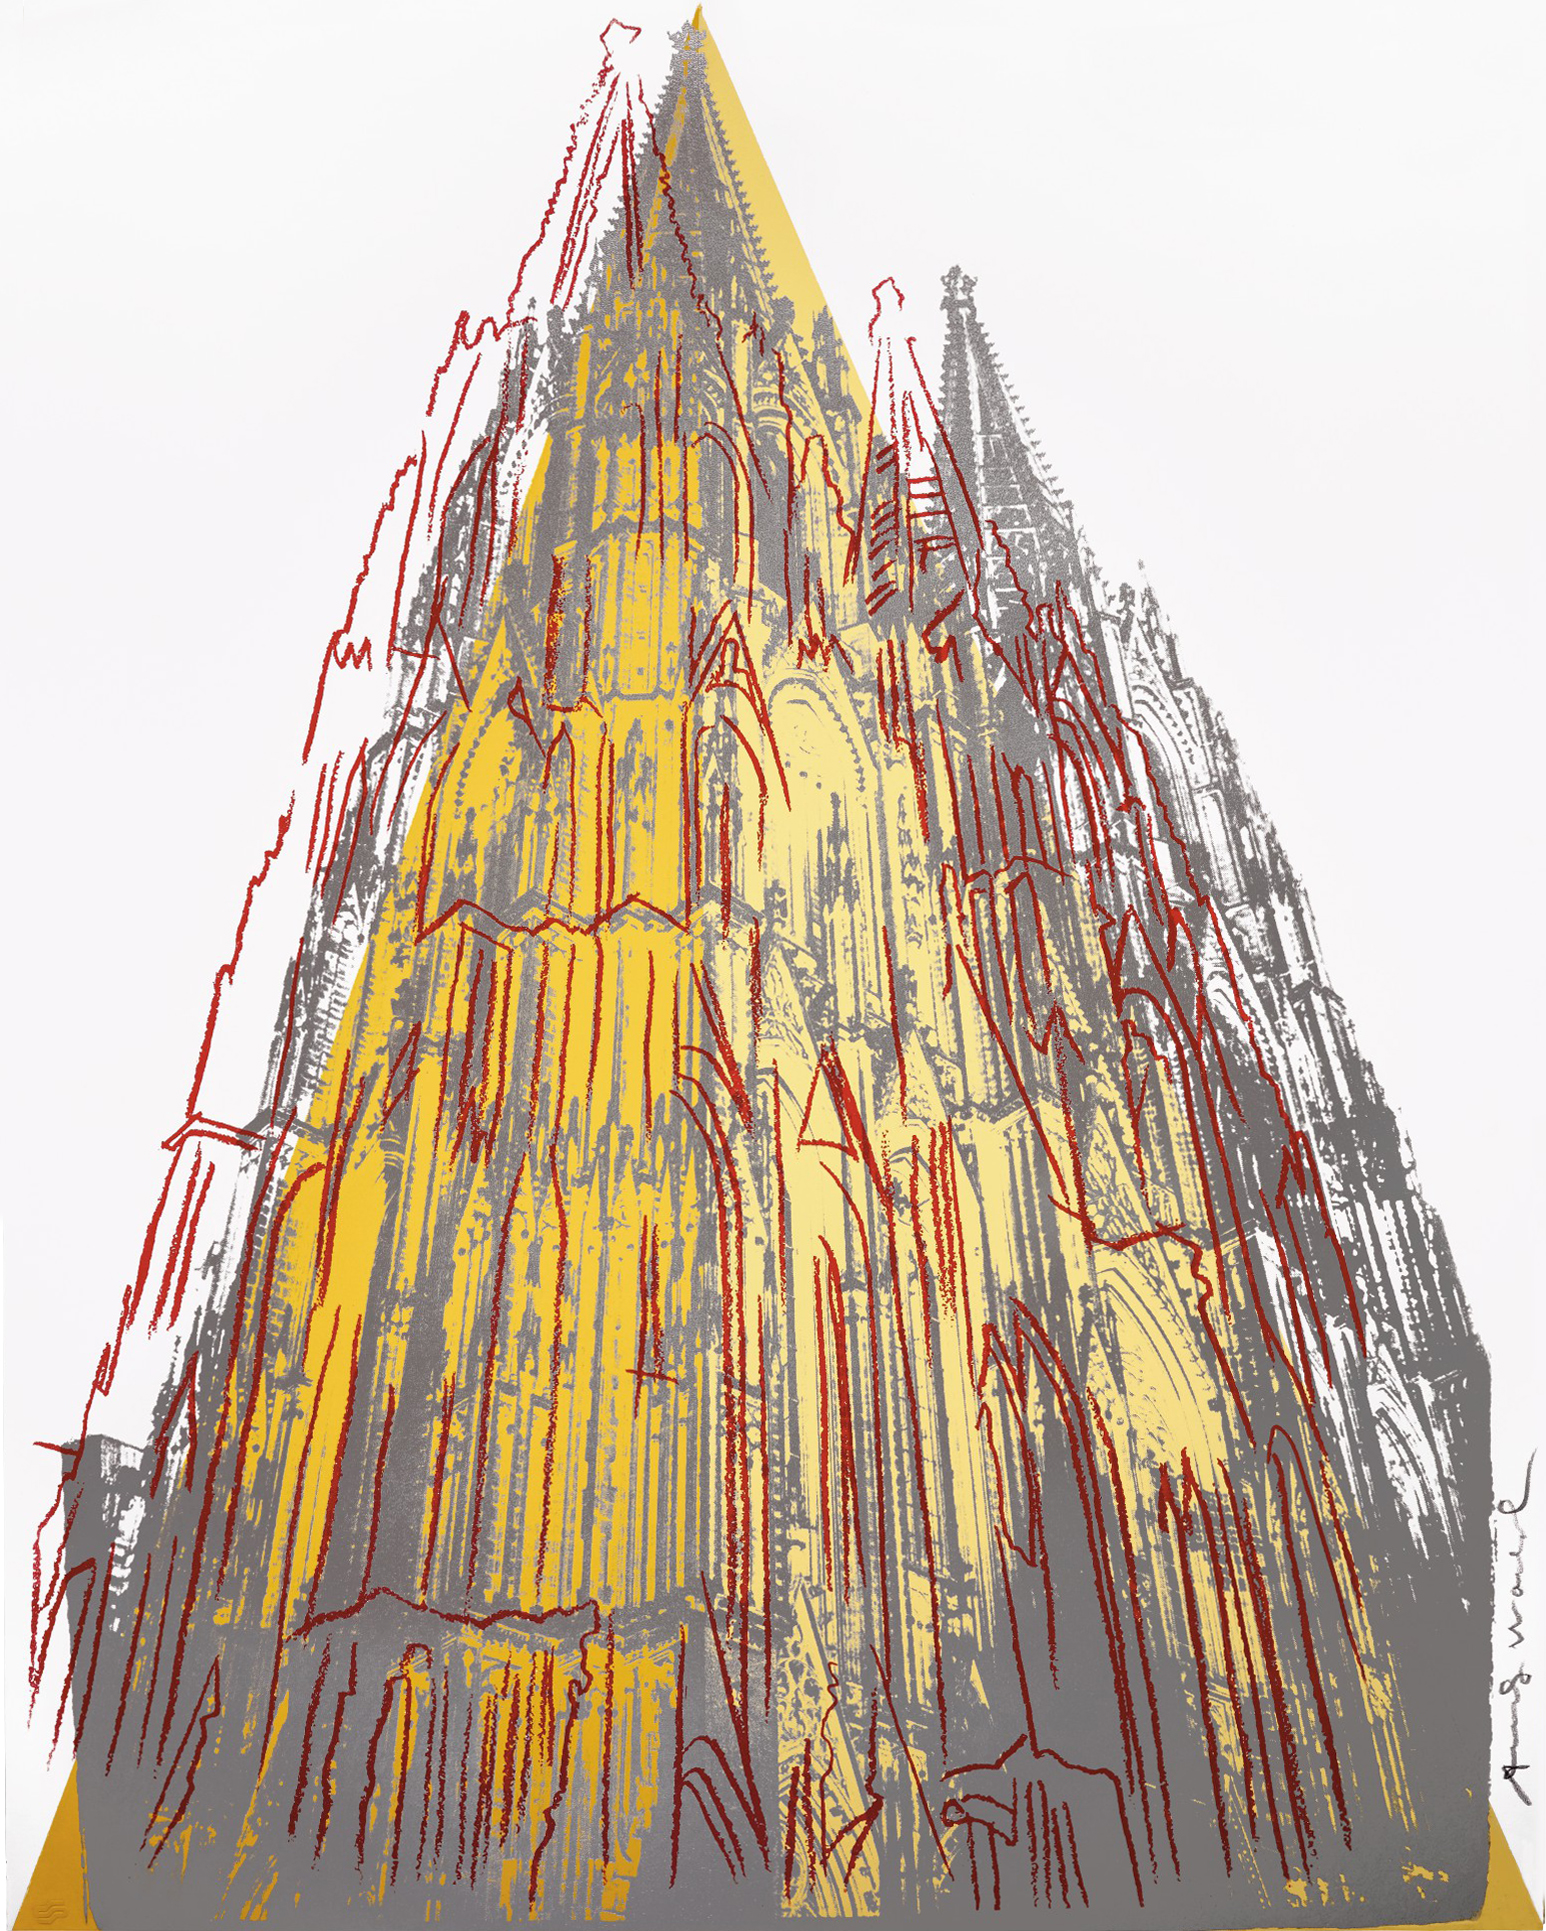 ANDY WARHOL | COLOGNE CATHEDRAL (SEE F. & S. IIB.361-364)